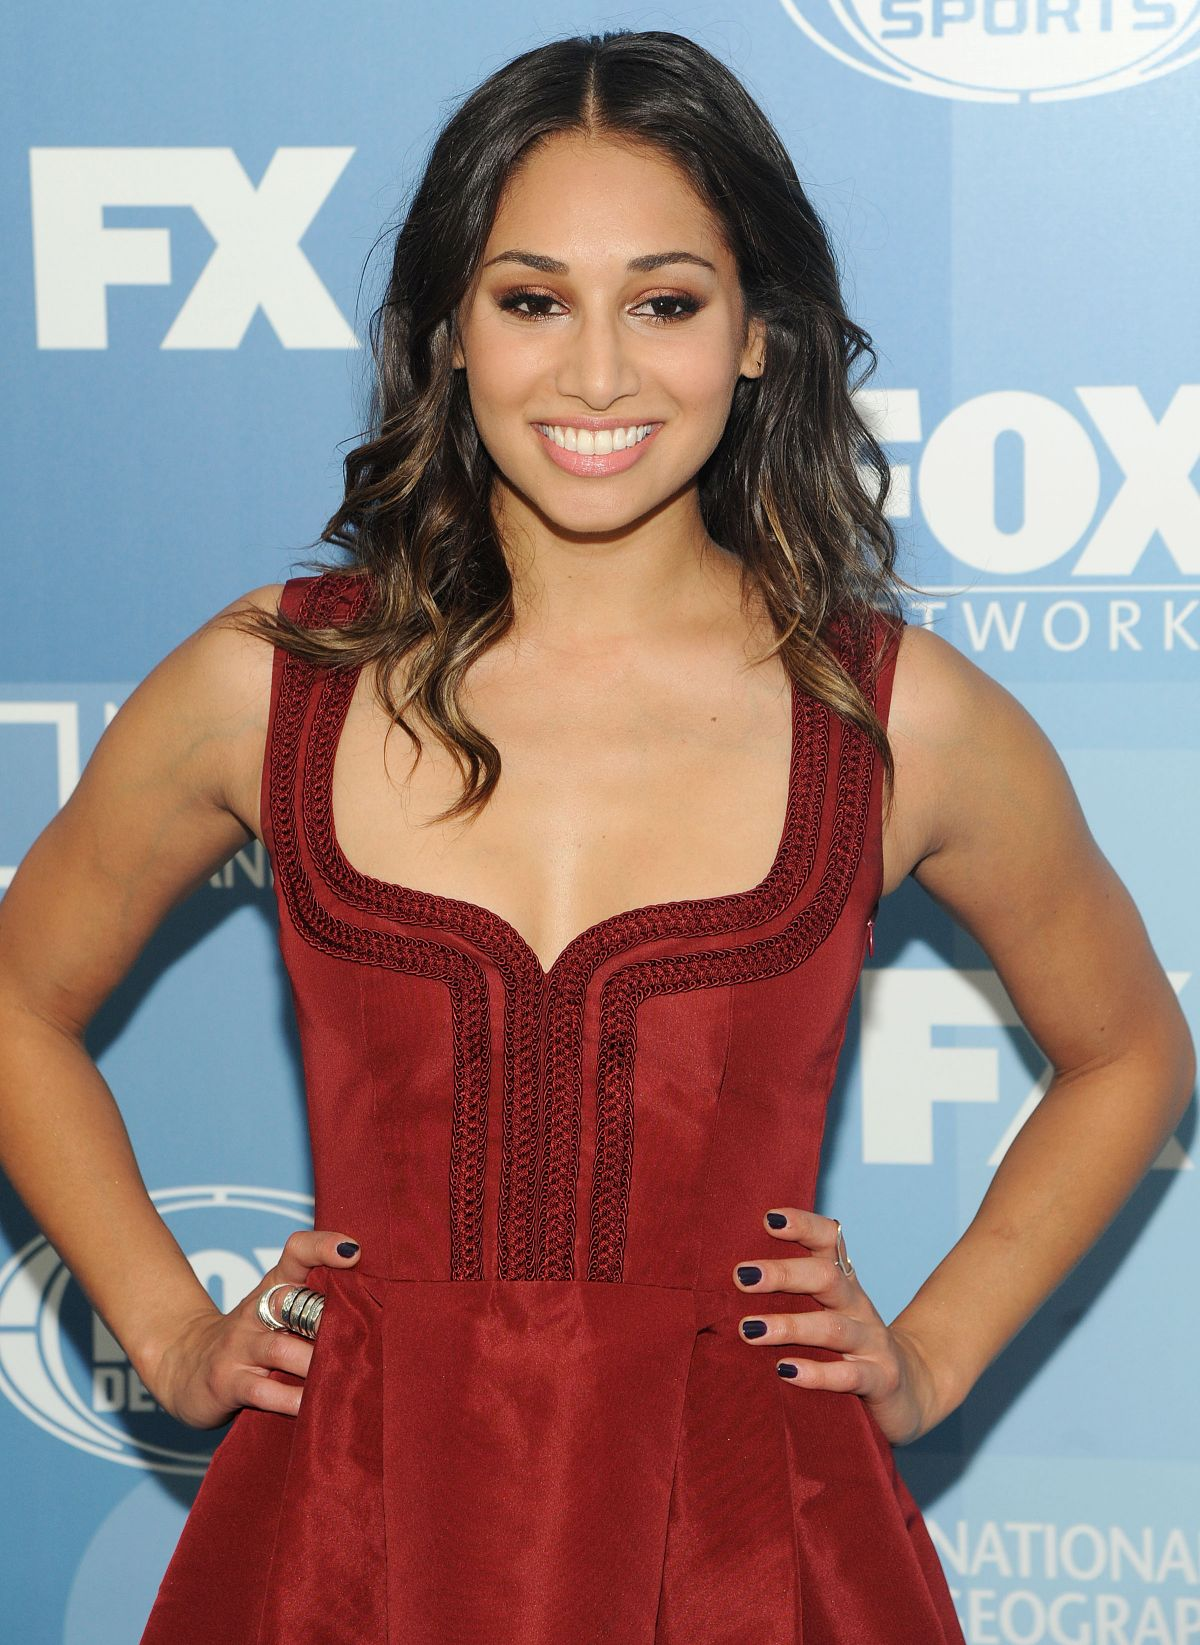 MEAGHAN RATH at Fox Network 2015 Programming Upfront in New York